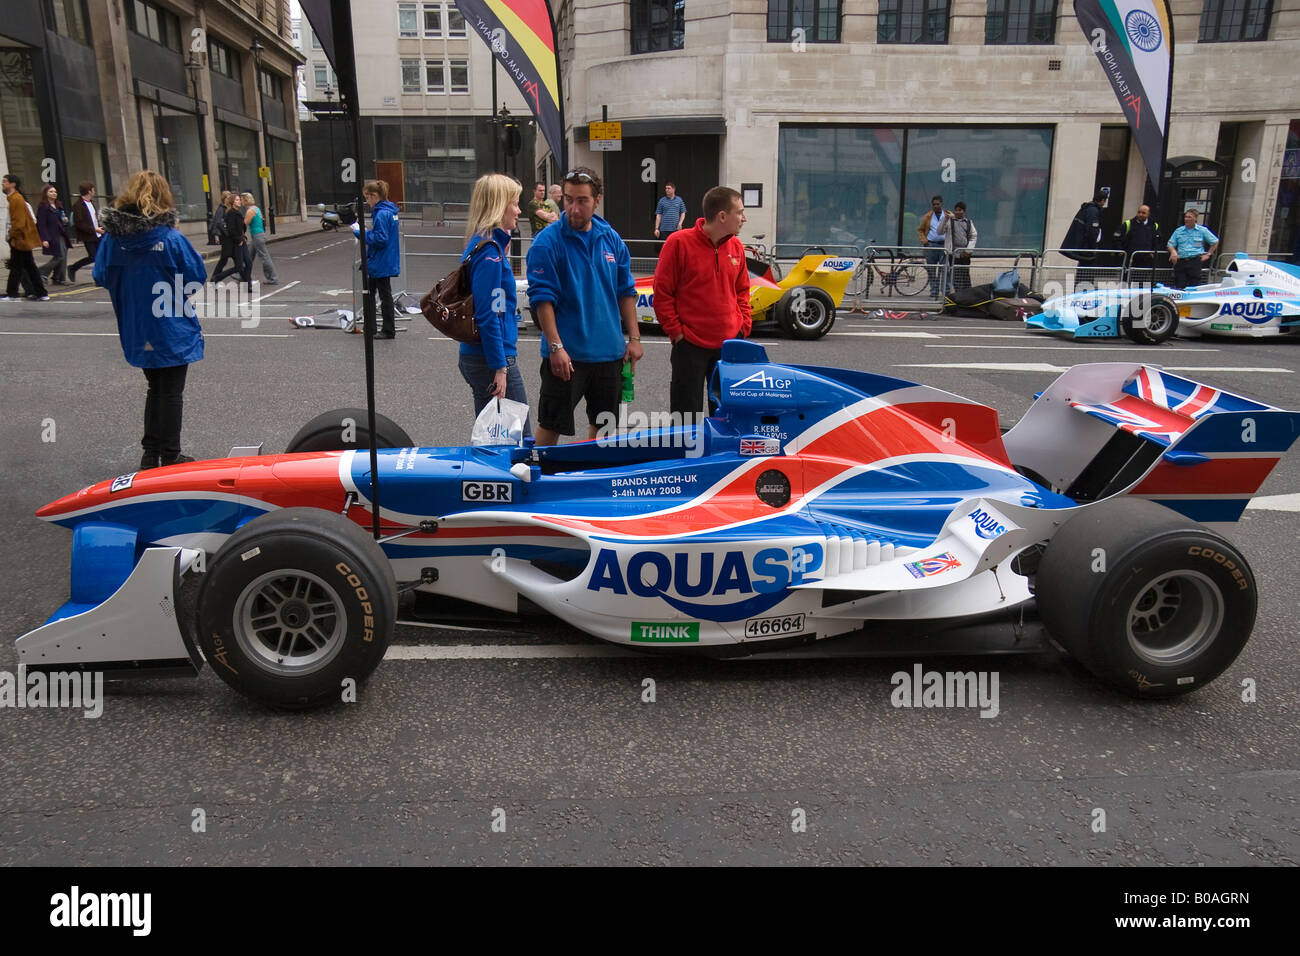 A1 GP Racing car of the British team on a makeshift grid in St James in London 2008 - Stock Image